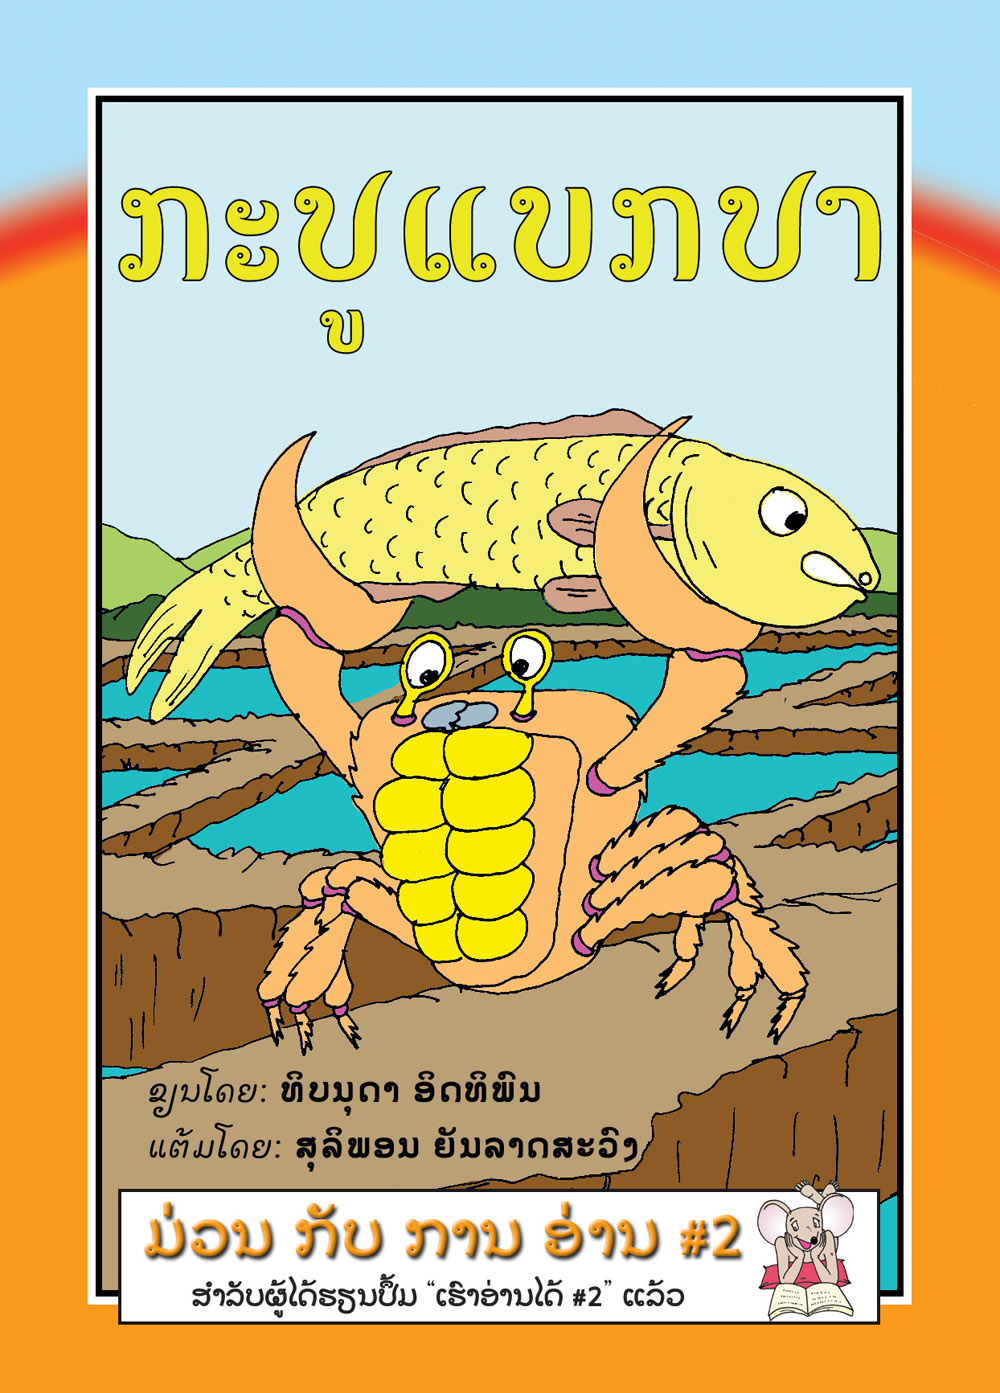 The Crab Carries the Fish large book cover, published in Lao language